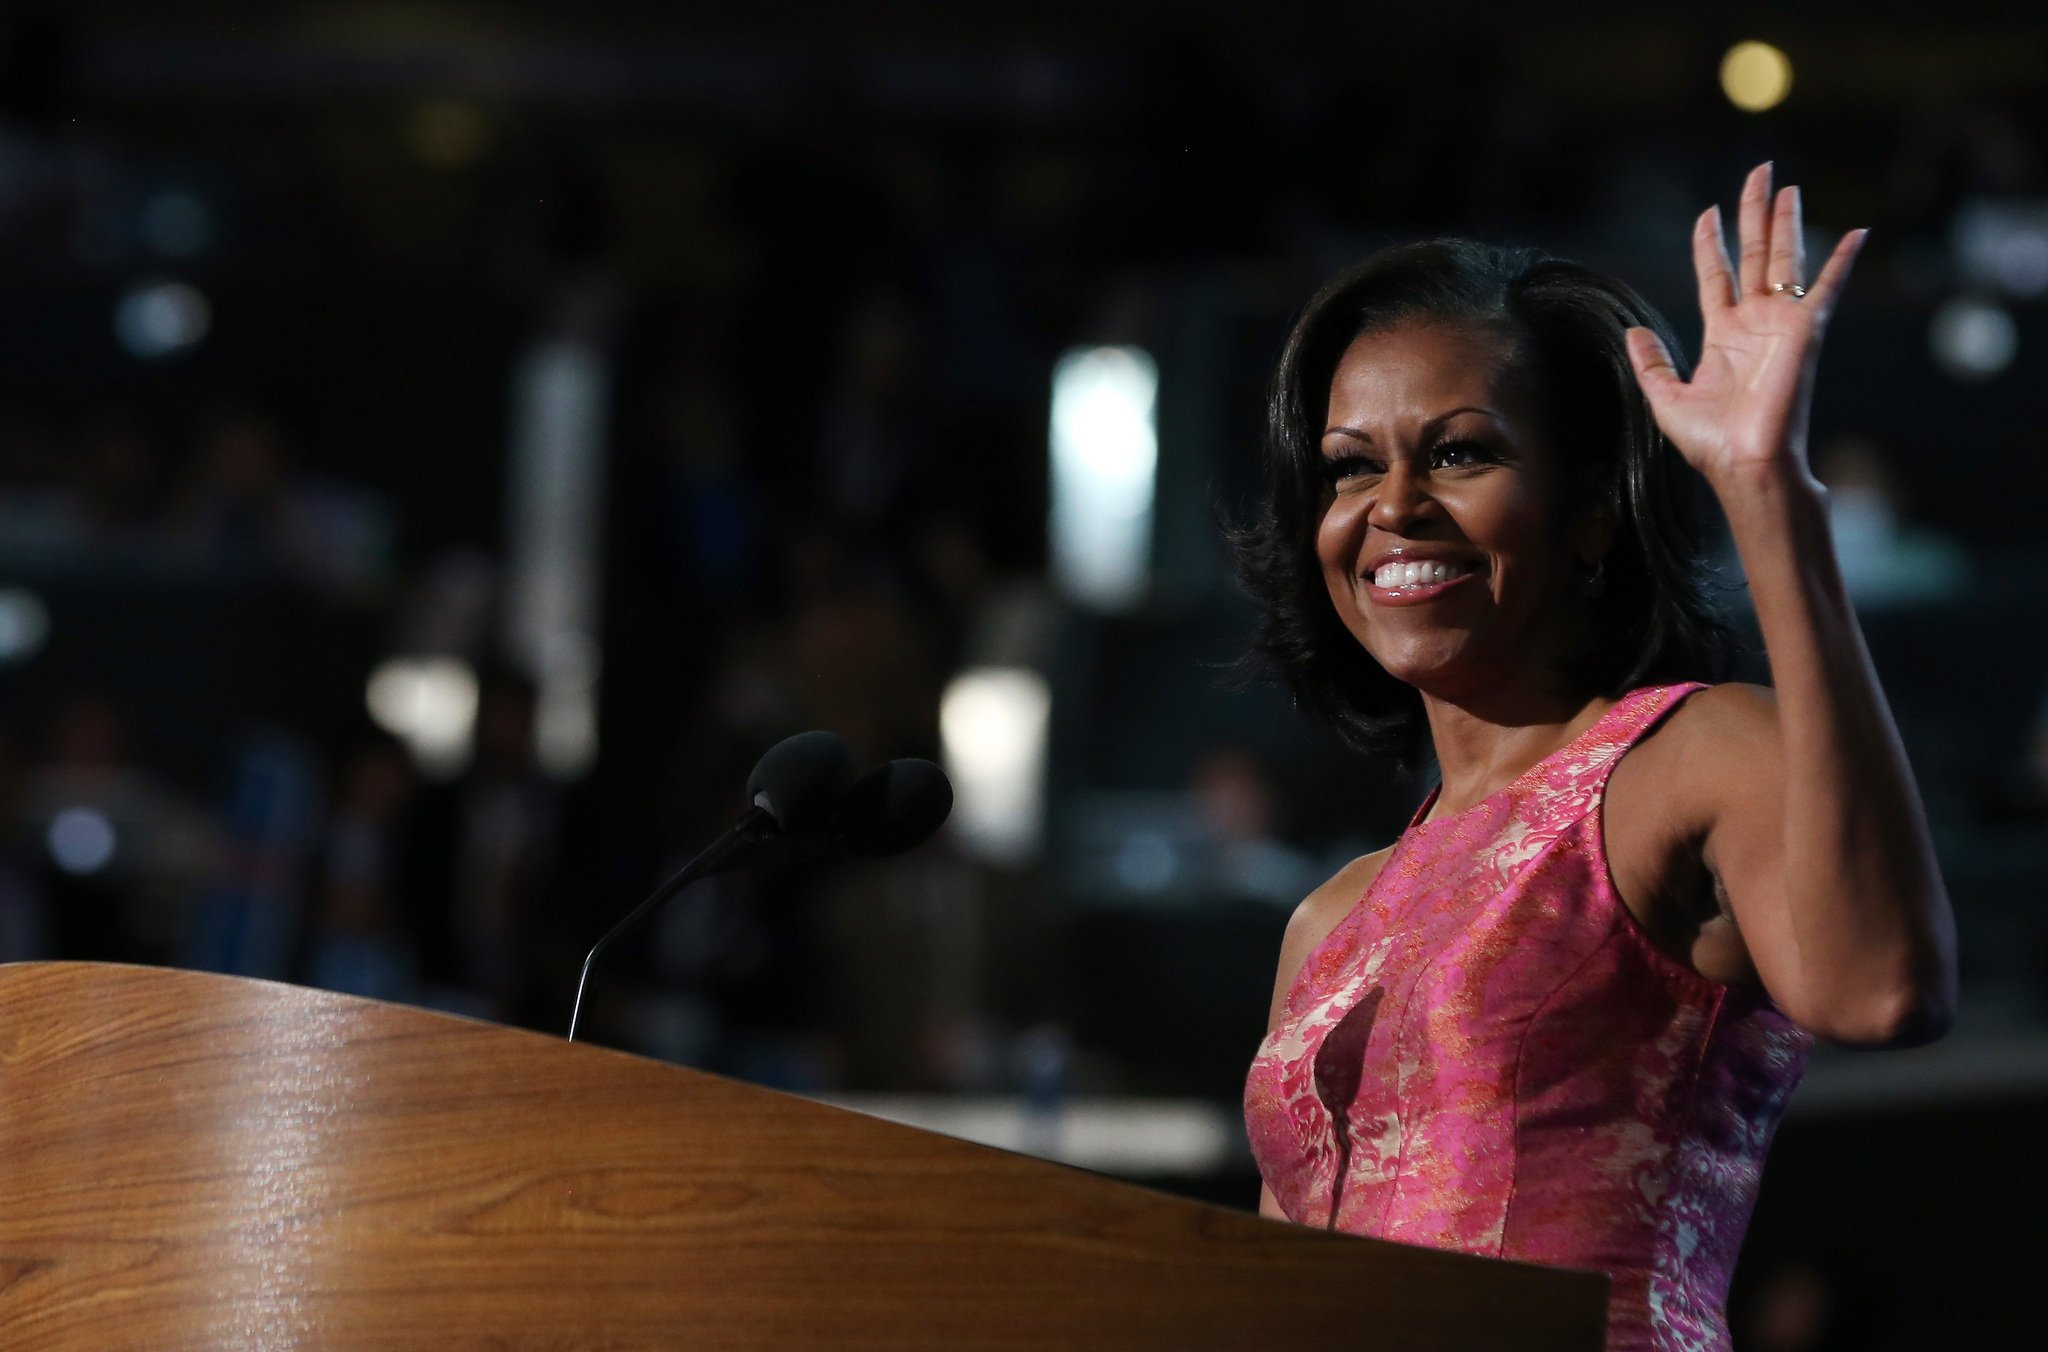 First Lady Michelle Obama has made an impassioned speech backing her husband, President Barack Obama, for another four-year White House term